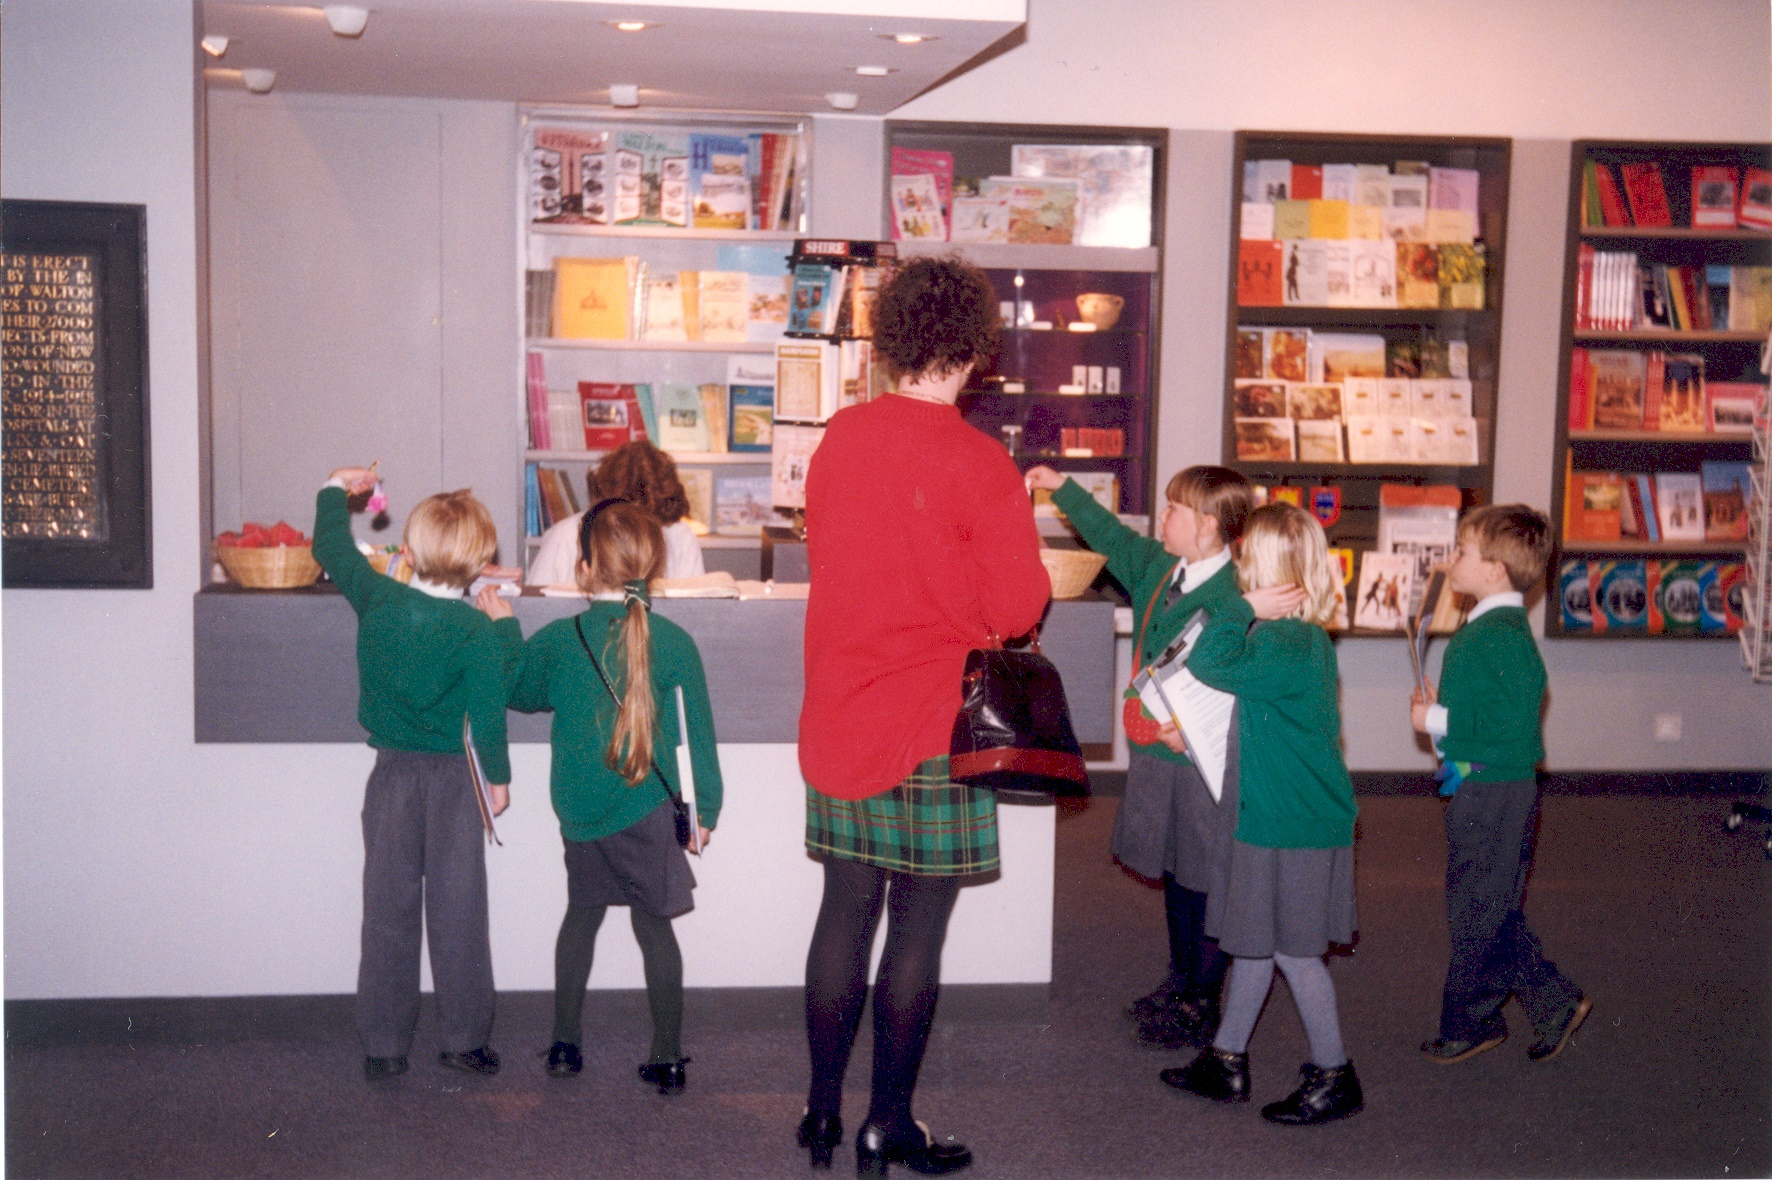 A school visit by Hurst Park School, Molesey, to Elmbridge Museum in early 1997. This was the first school visit to the museum that year and since the major refurbishment.